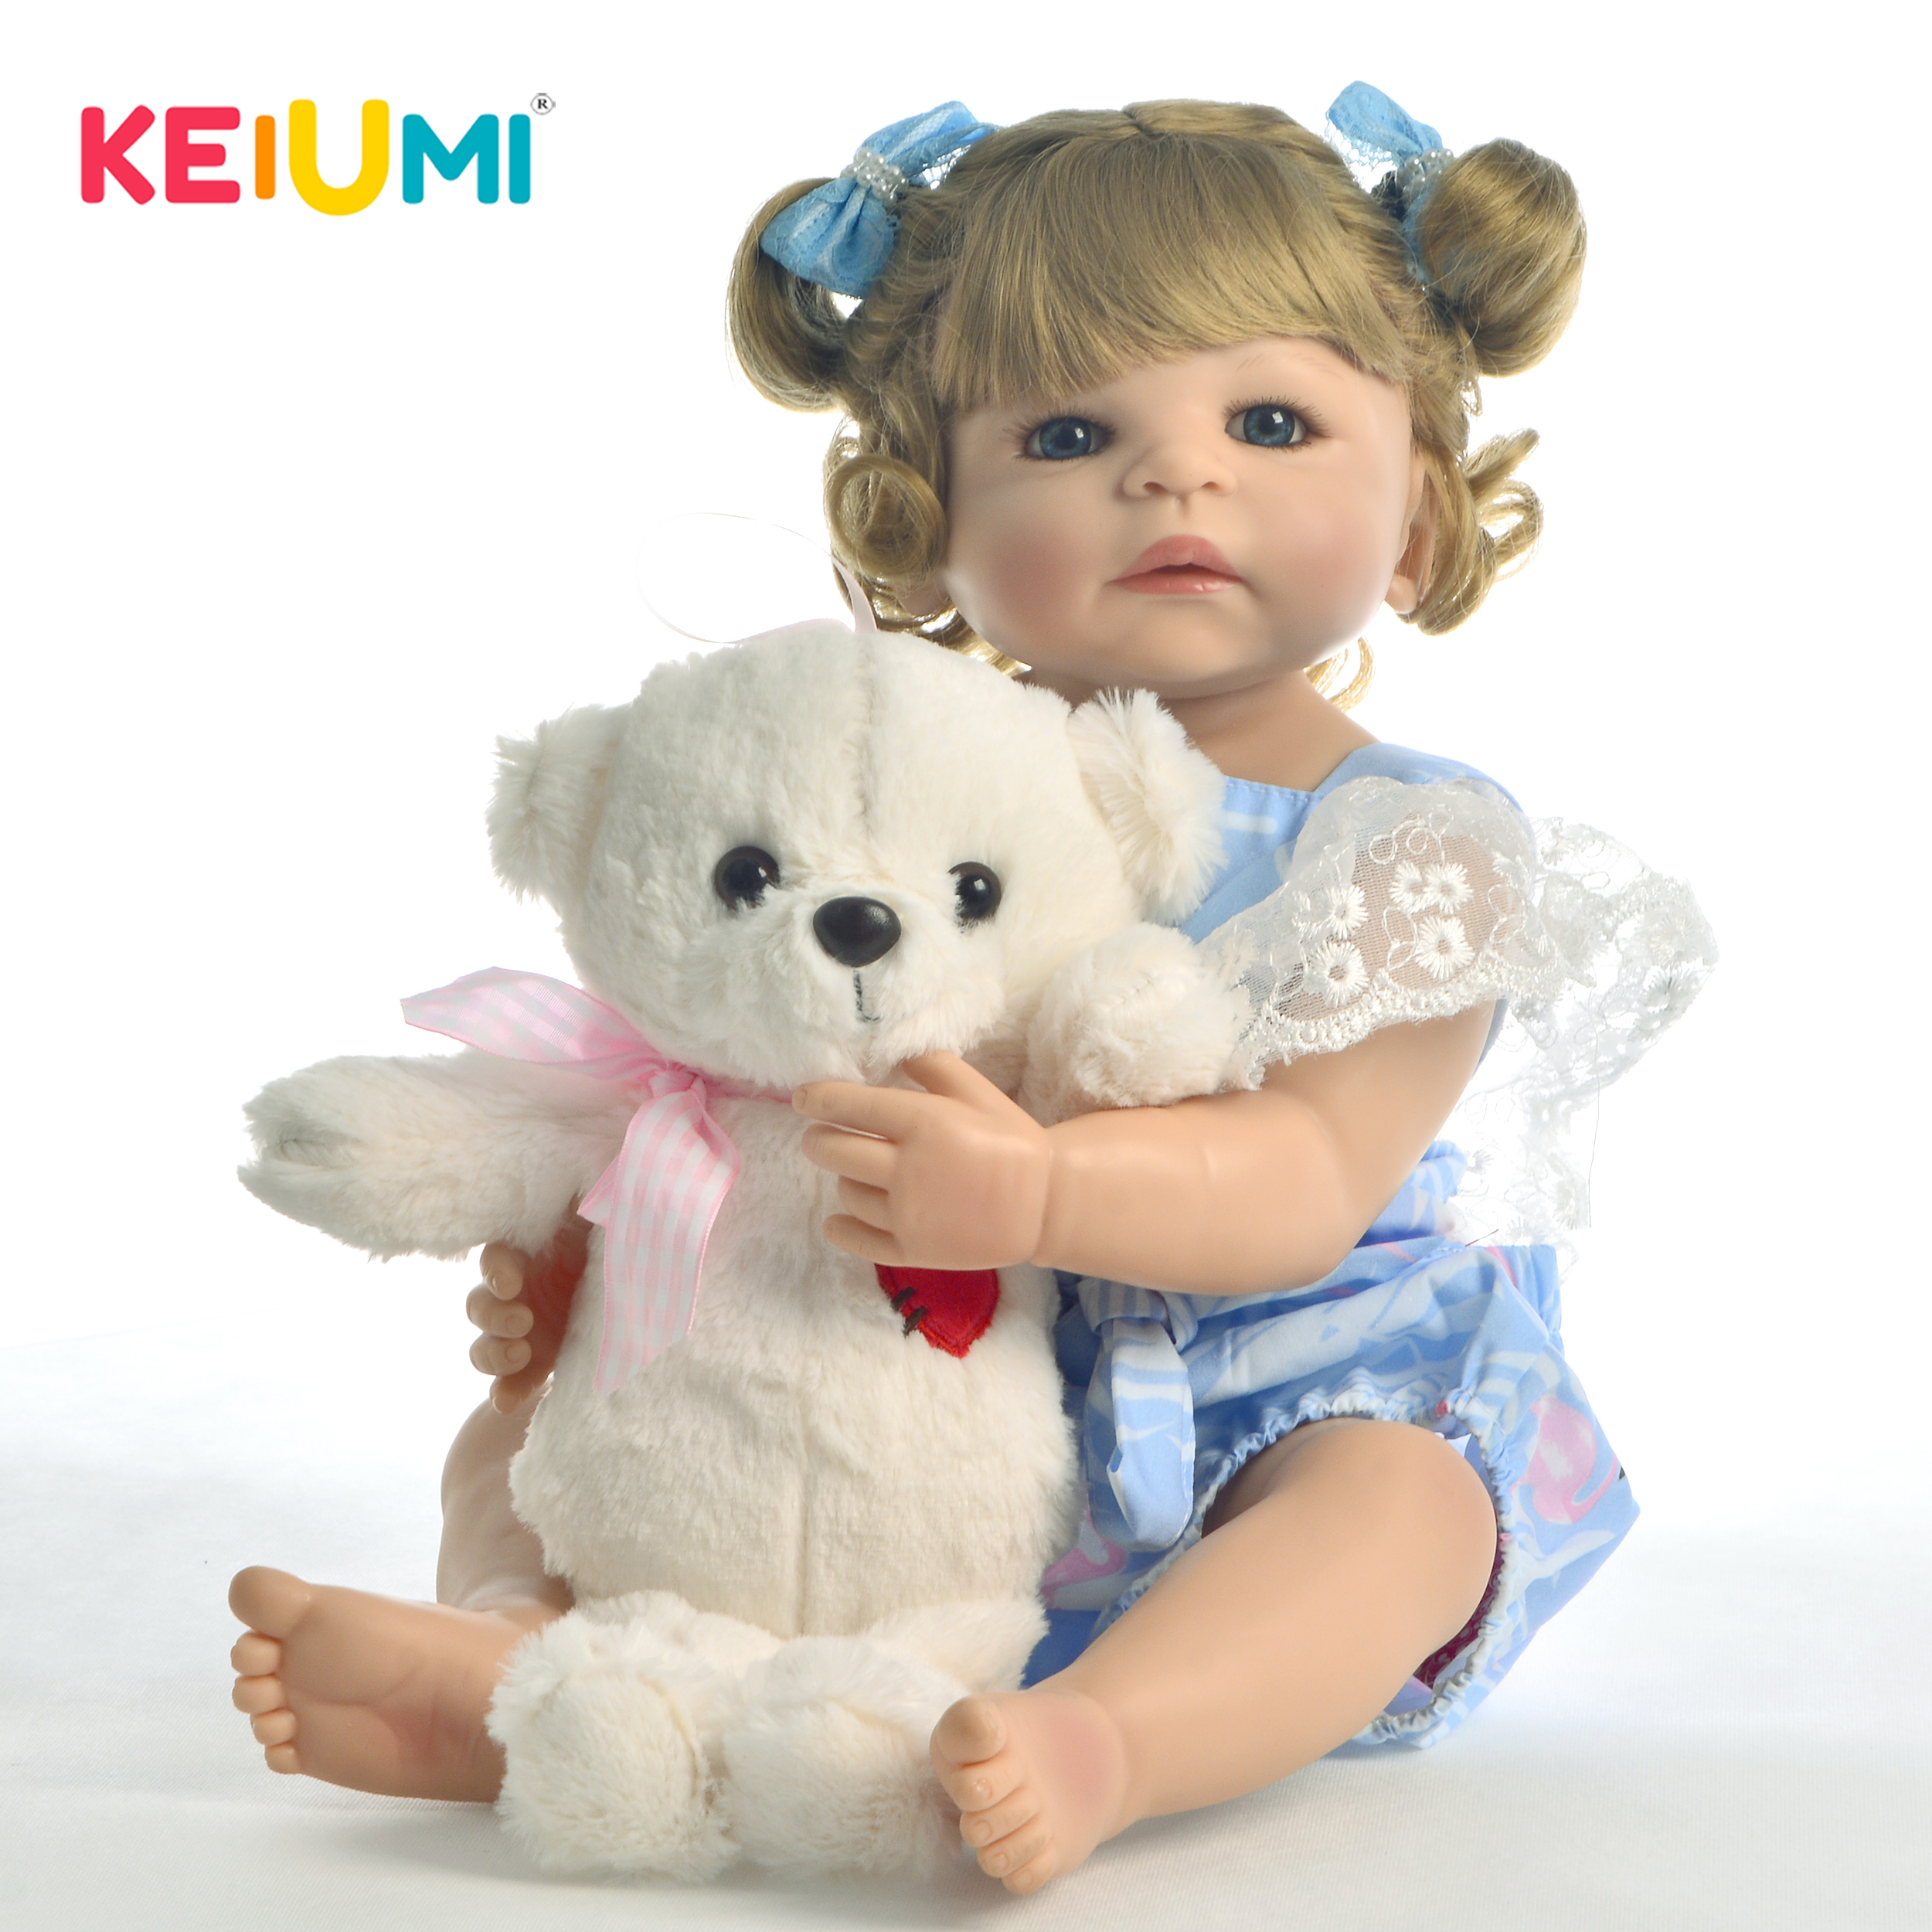 New Style 22 55cm Silicone Full Body Reborn Dolls Lifelike Princess Newborn Girl Babies Doll With Bear Toy Kids Birthday GiftNew Style 22 55cm Silicone Full Body Reborn Dolls Lifelike Princess Newborn Girl Babies Doll With Bear Toy Kids Birthday Gift